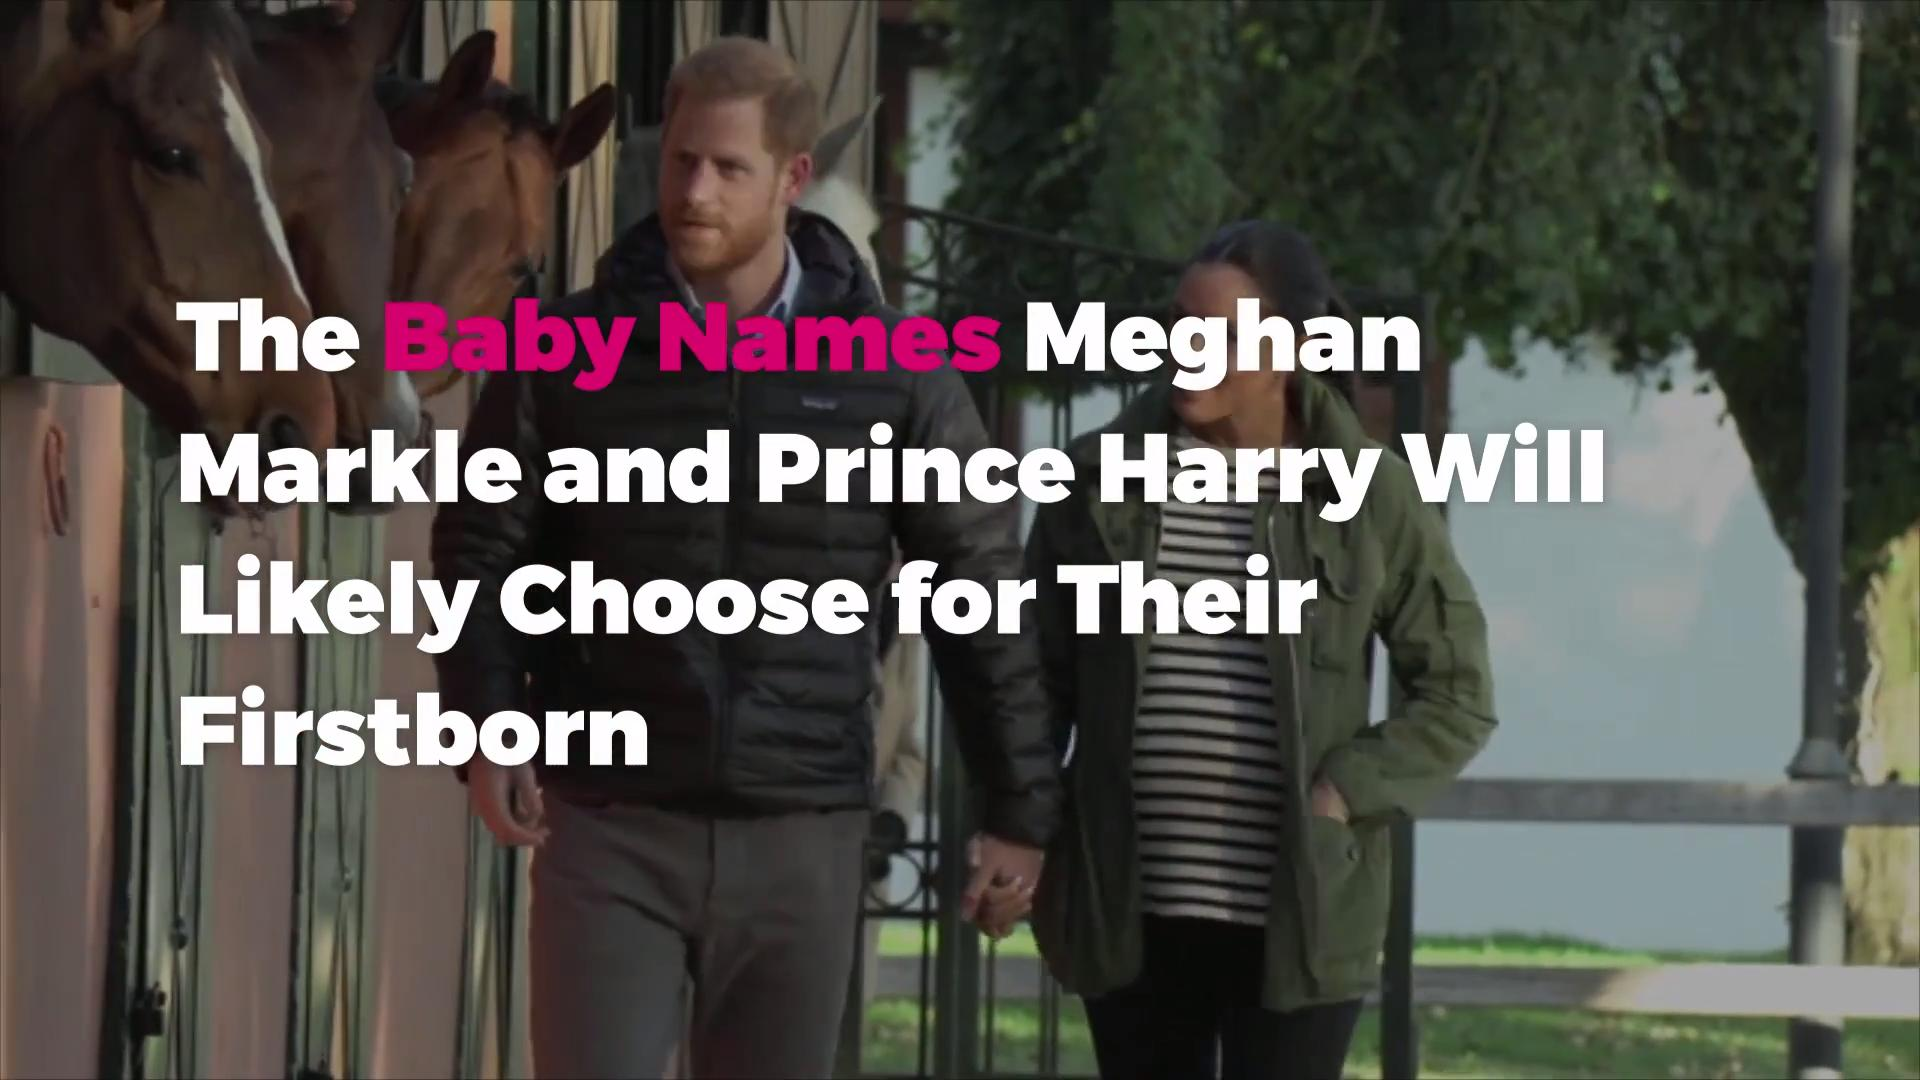 The Baby Names Meghan Markle and Prince Harry Will Likely Choose for